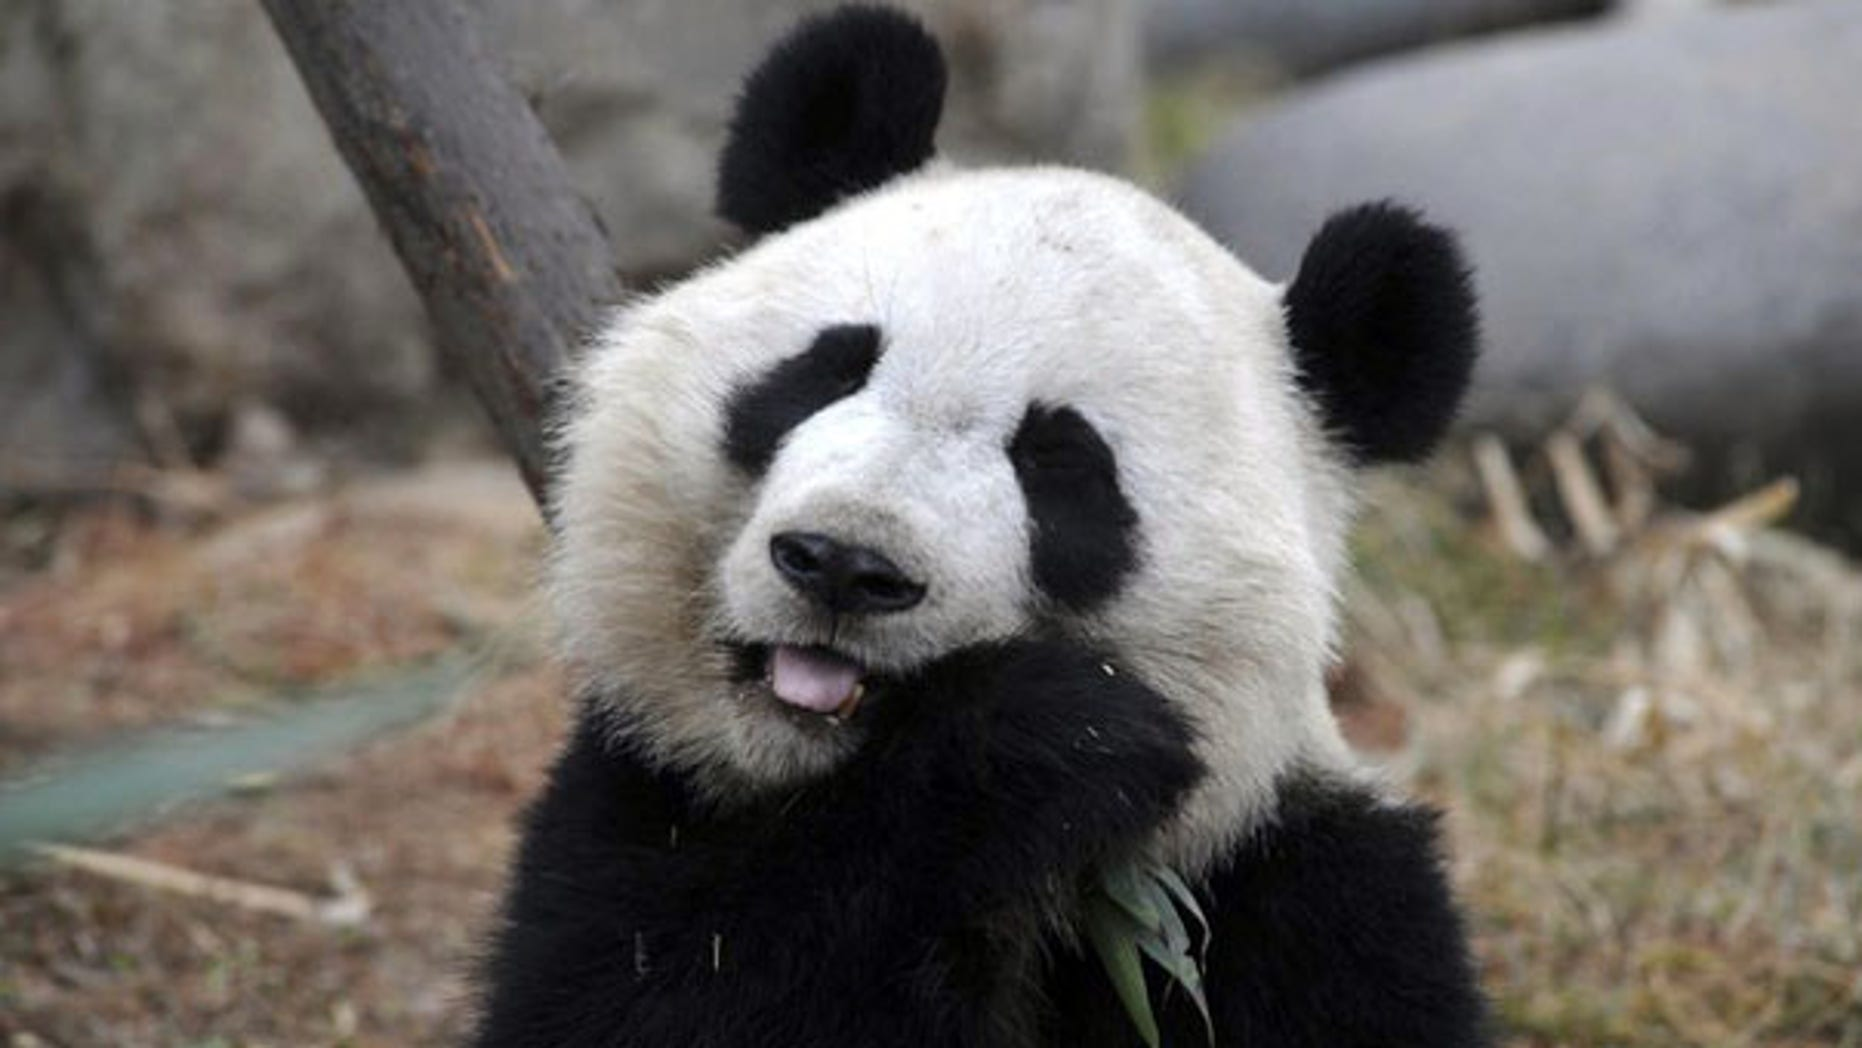 March 15: A giant panda munches on bamboo at panda breeding center in China.